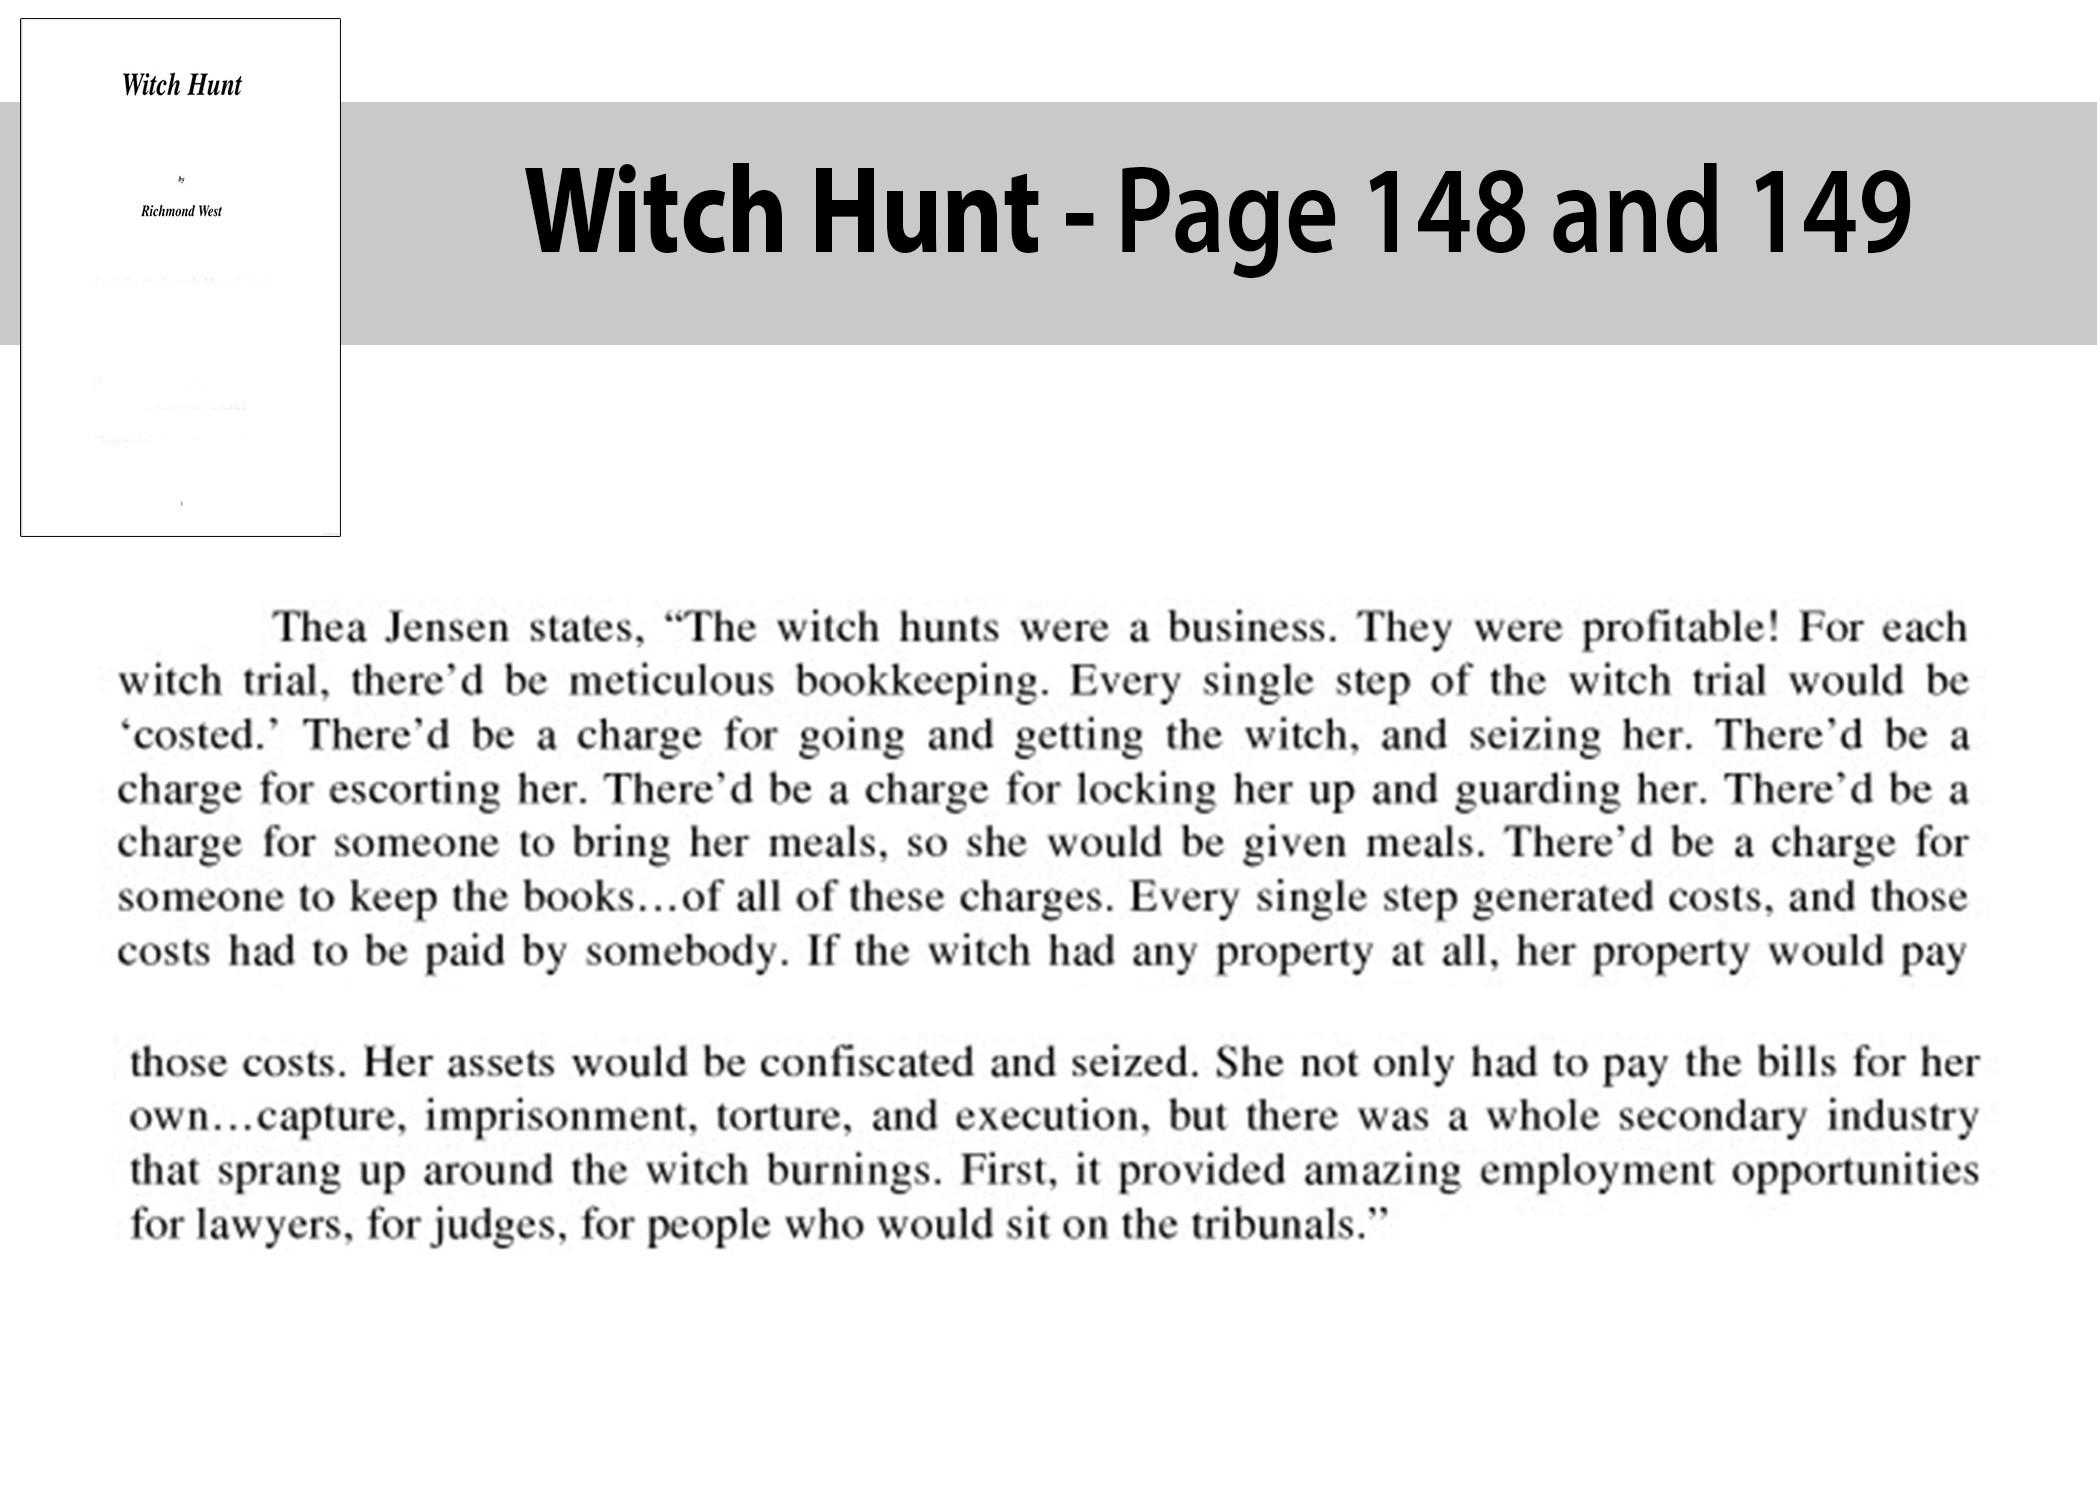 Witch Hunt - Was a profitable business